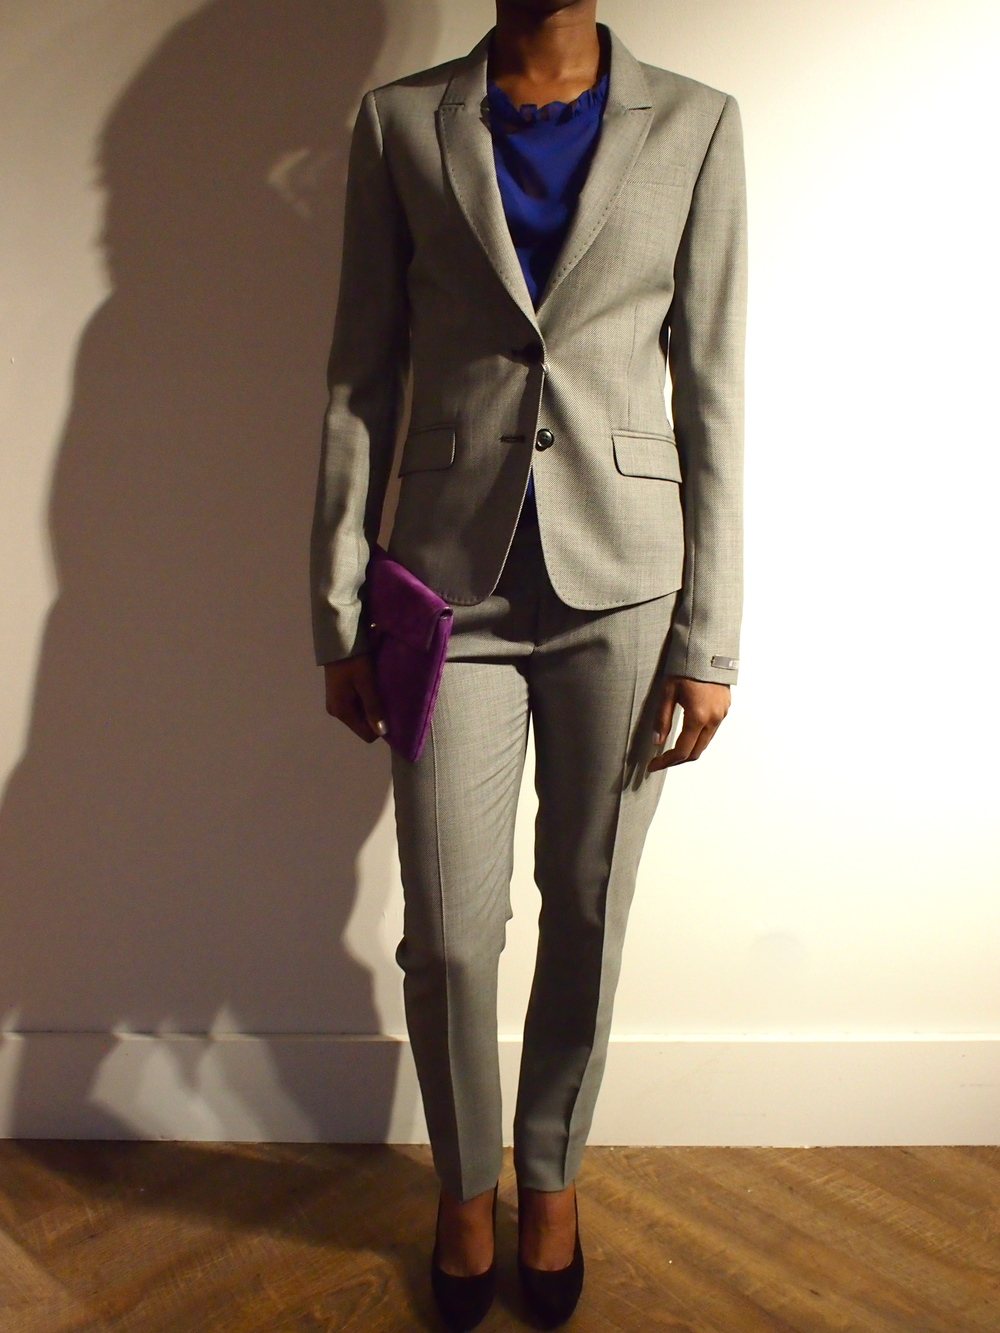 Odina Blazer $399 with matching suit pant $229 by Tiger of Sweden